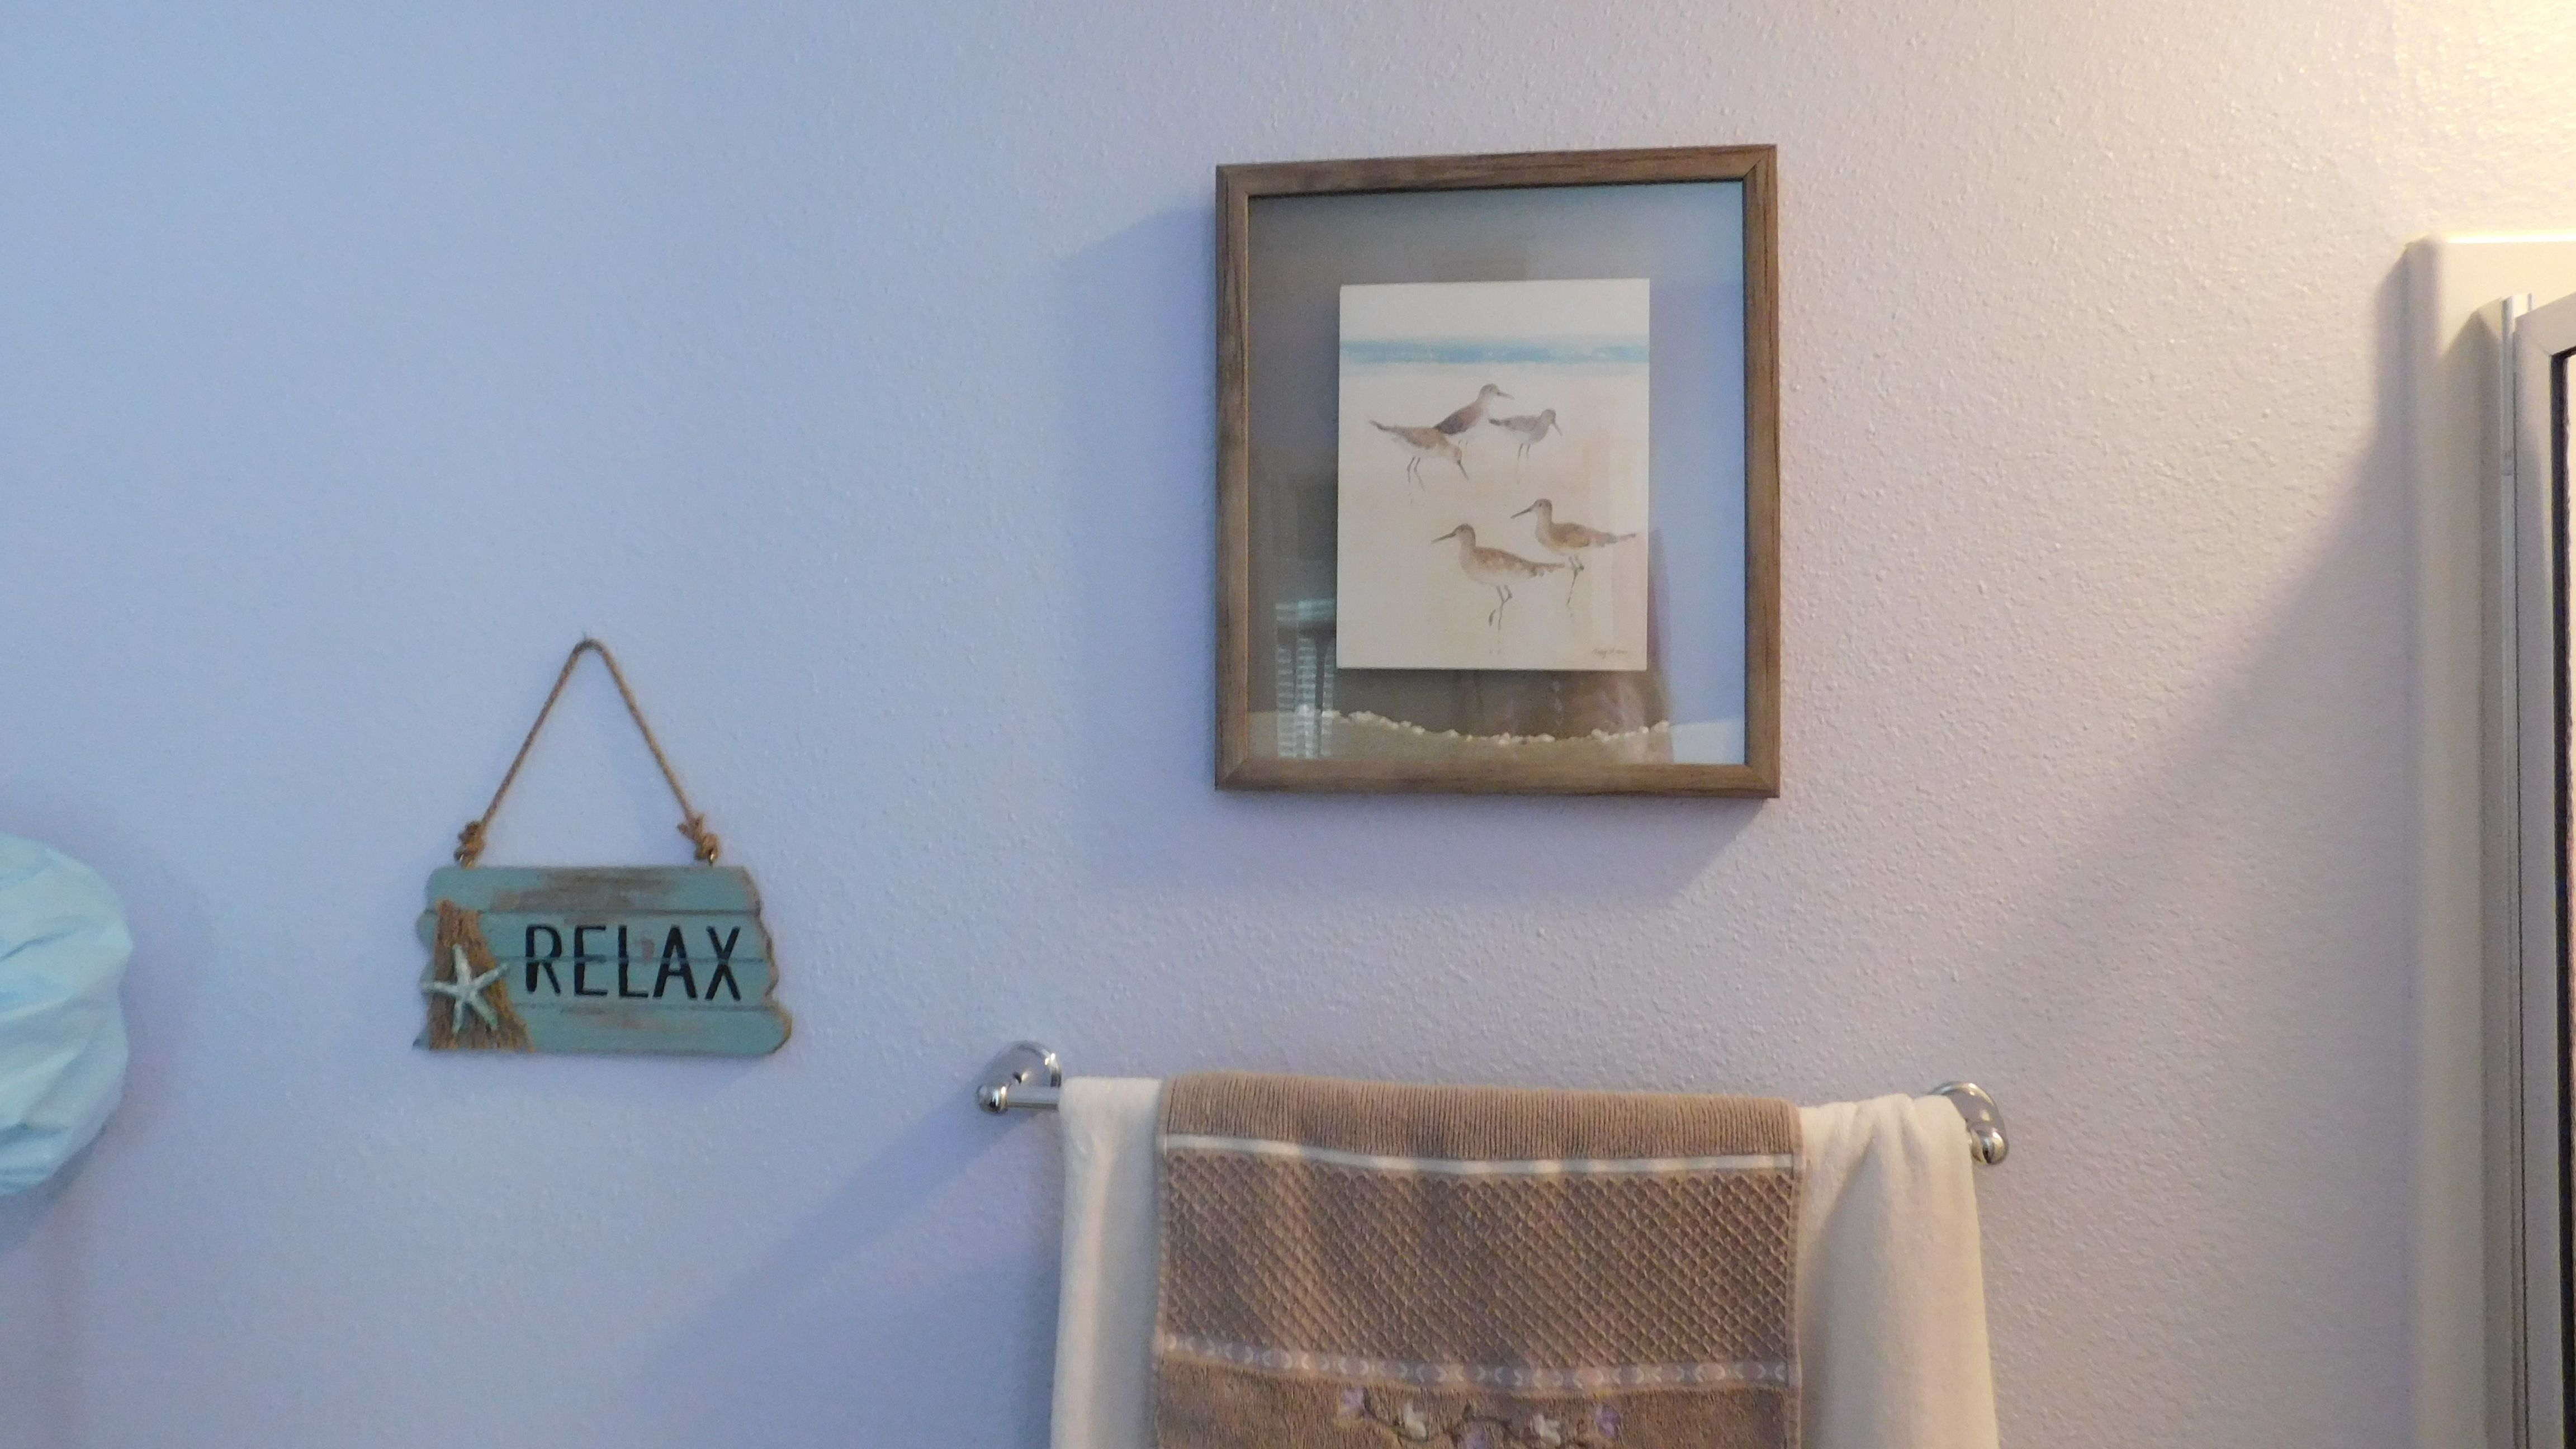 Bathroom Painted With Behr Angelic Blue, Which Is A Periwinkle